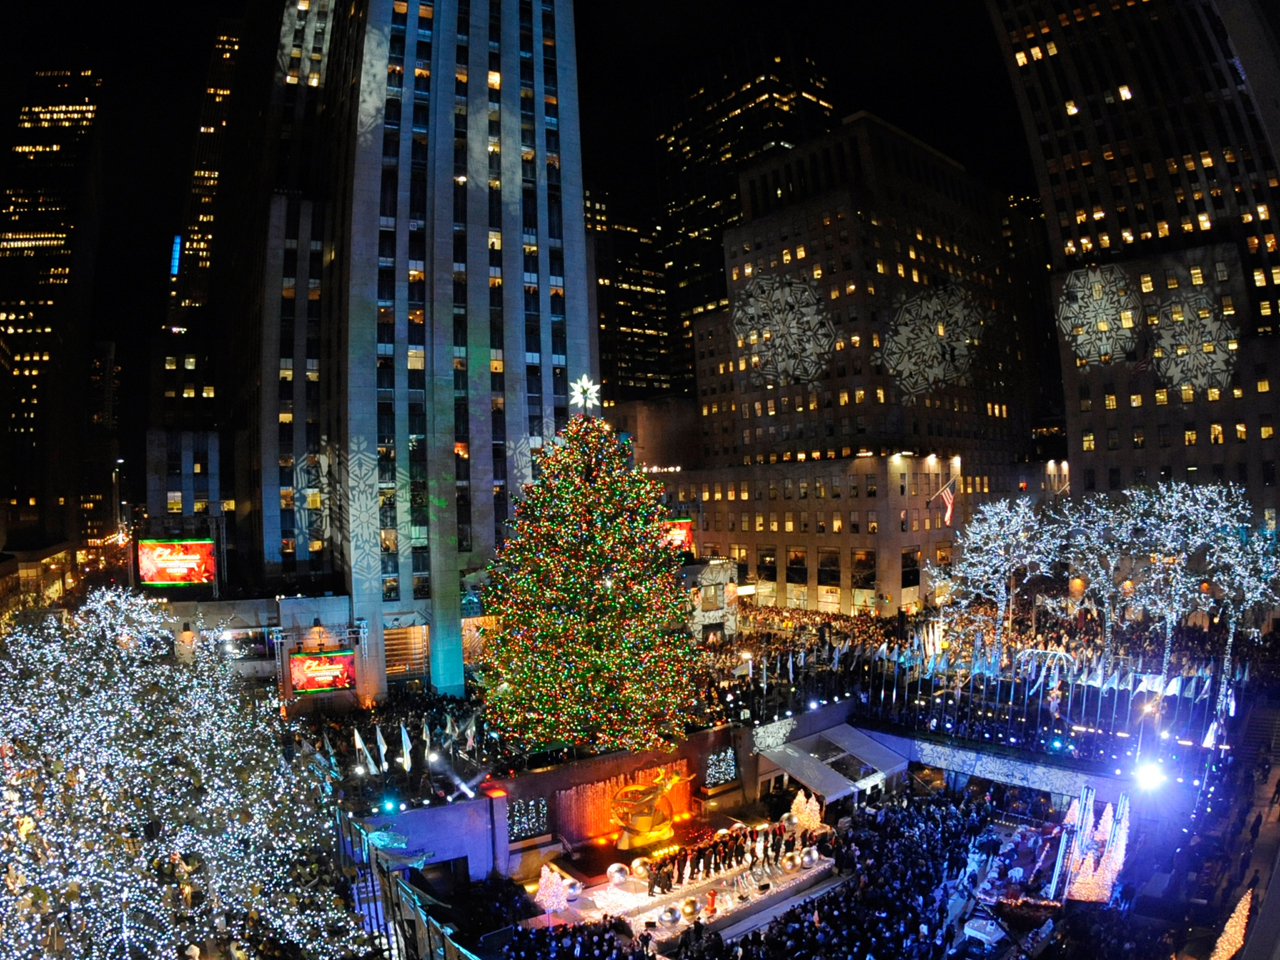 Kerstboom New York Rockefeller Center Christmas Tree 2011 - Photo 9